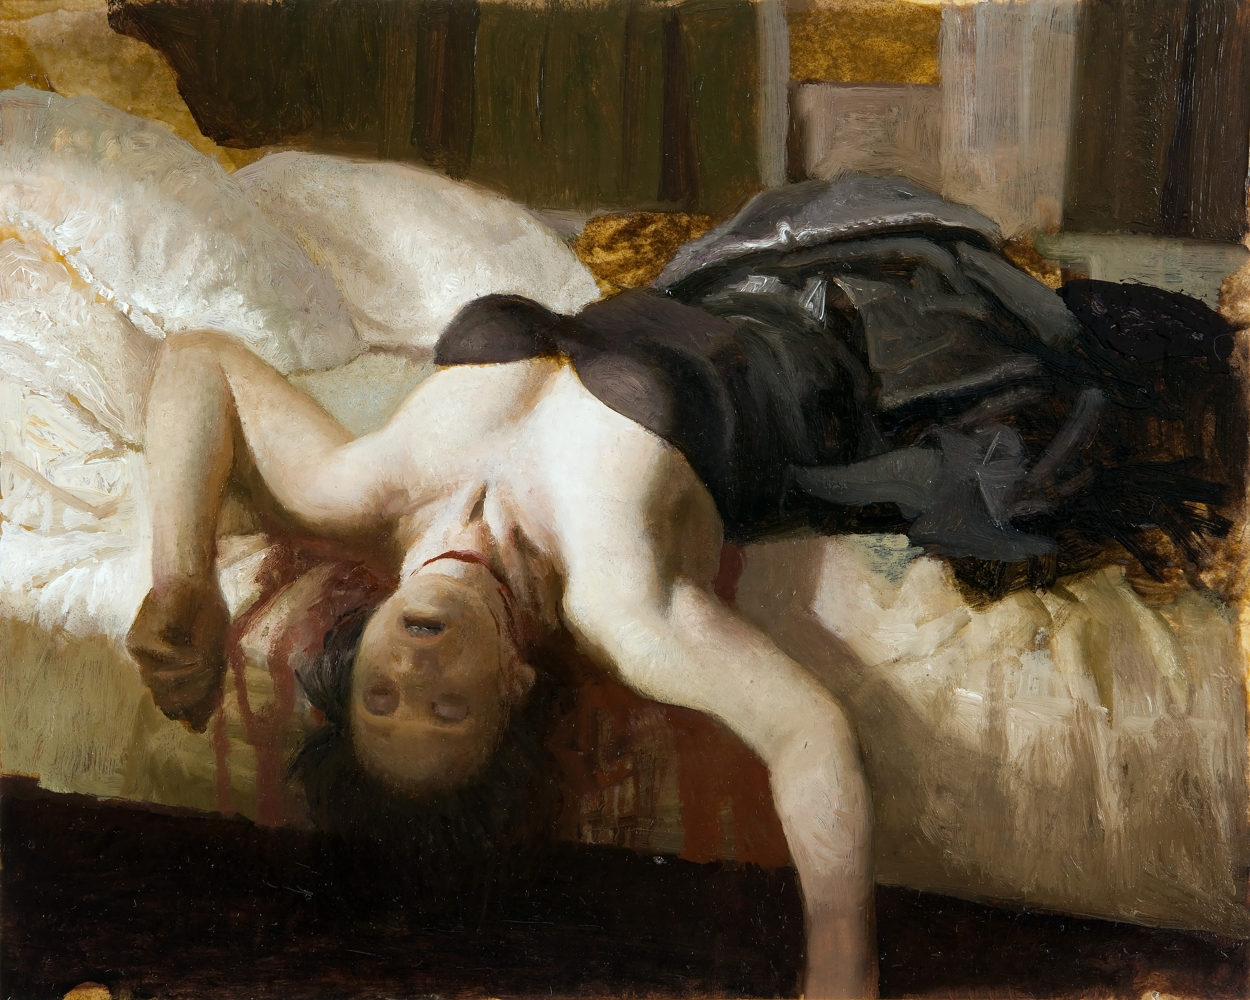 Oil painting of woman lying on edge of bed with throat slit.